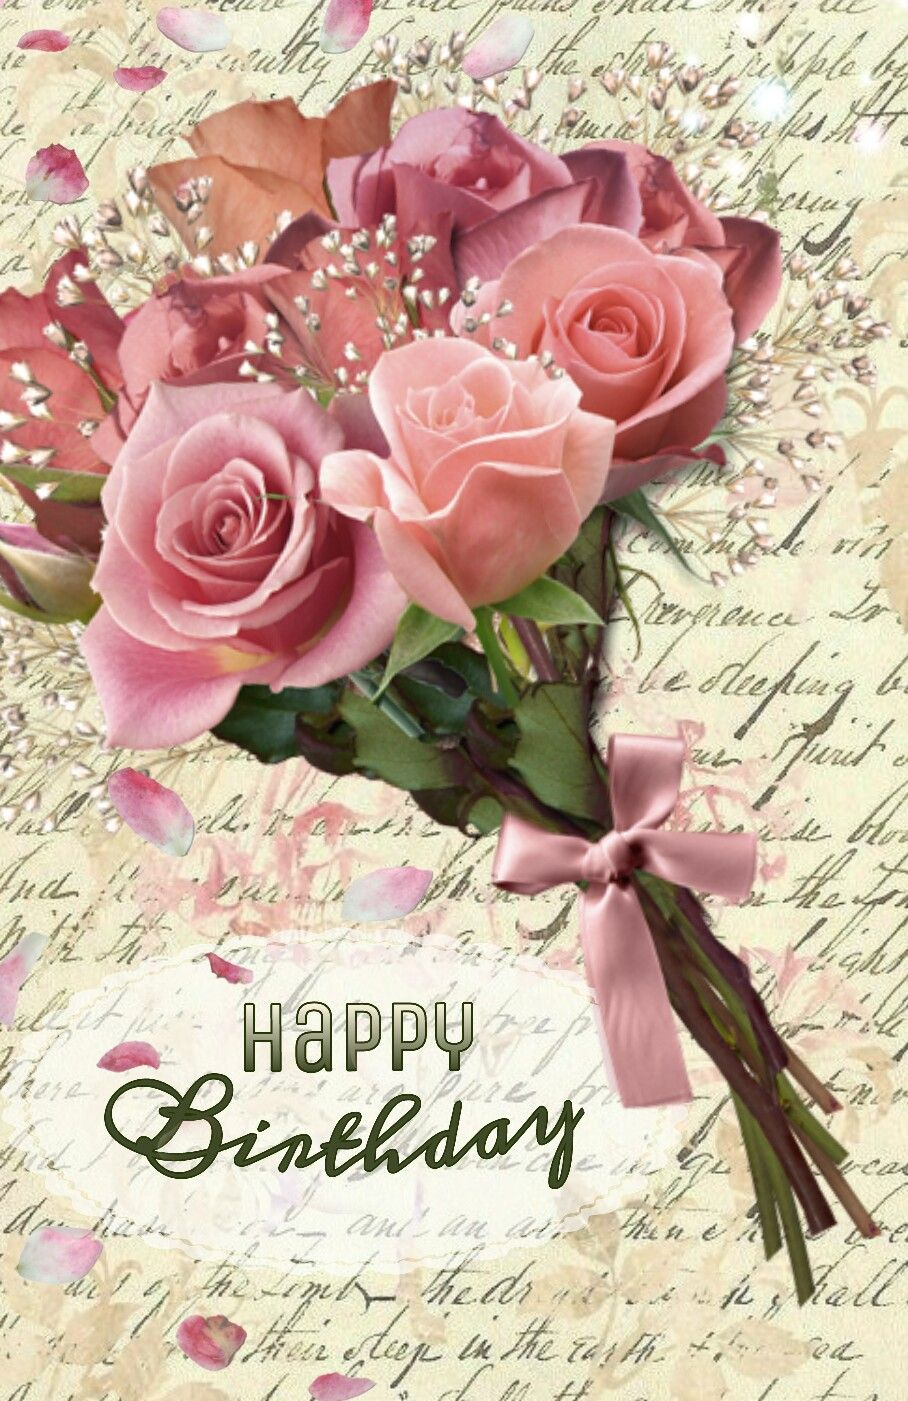 Happy birthday birthday cards pinterest happy birthday happy birthday birthday cards pinterest happy birthday birthdays and birthday greetings izmirmasajfo